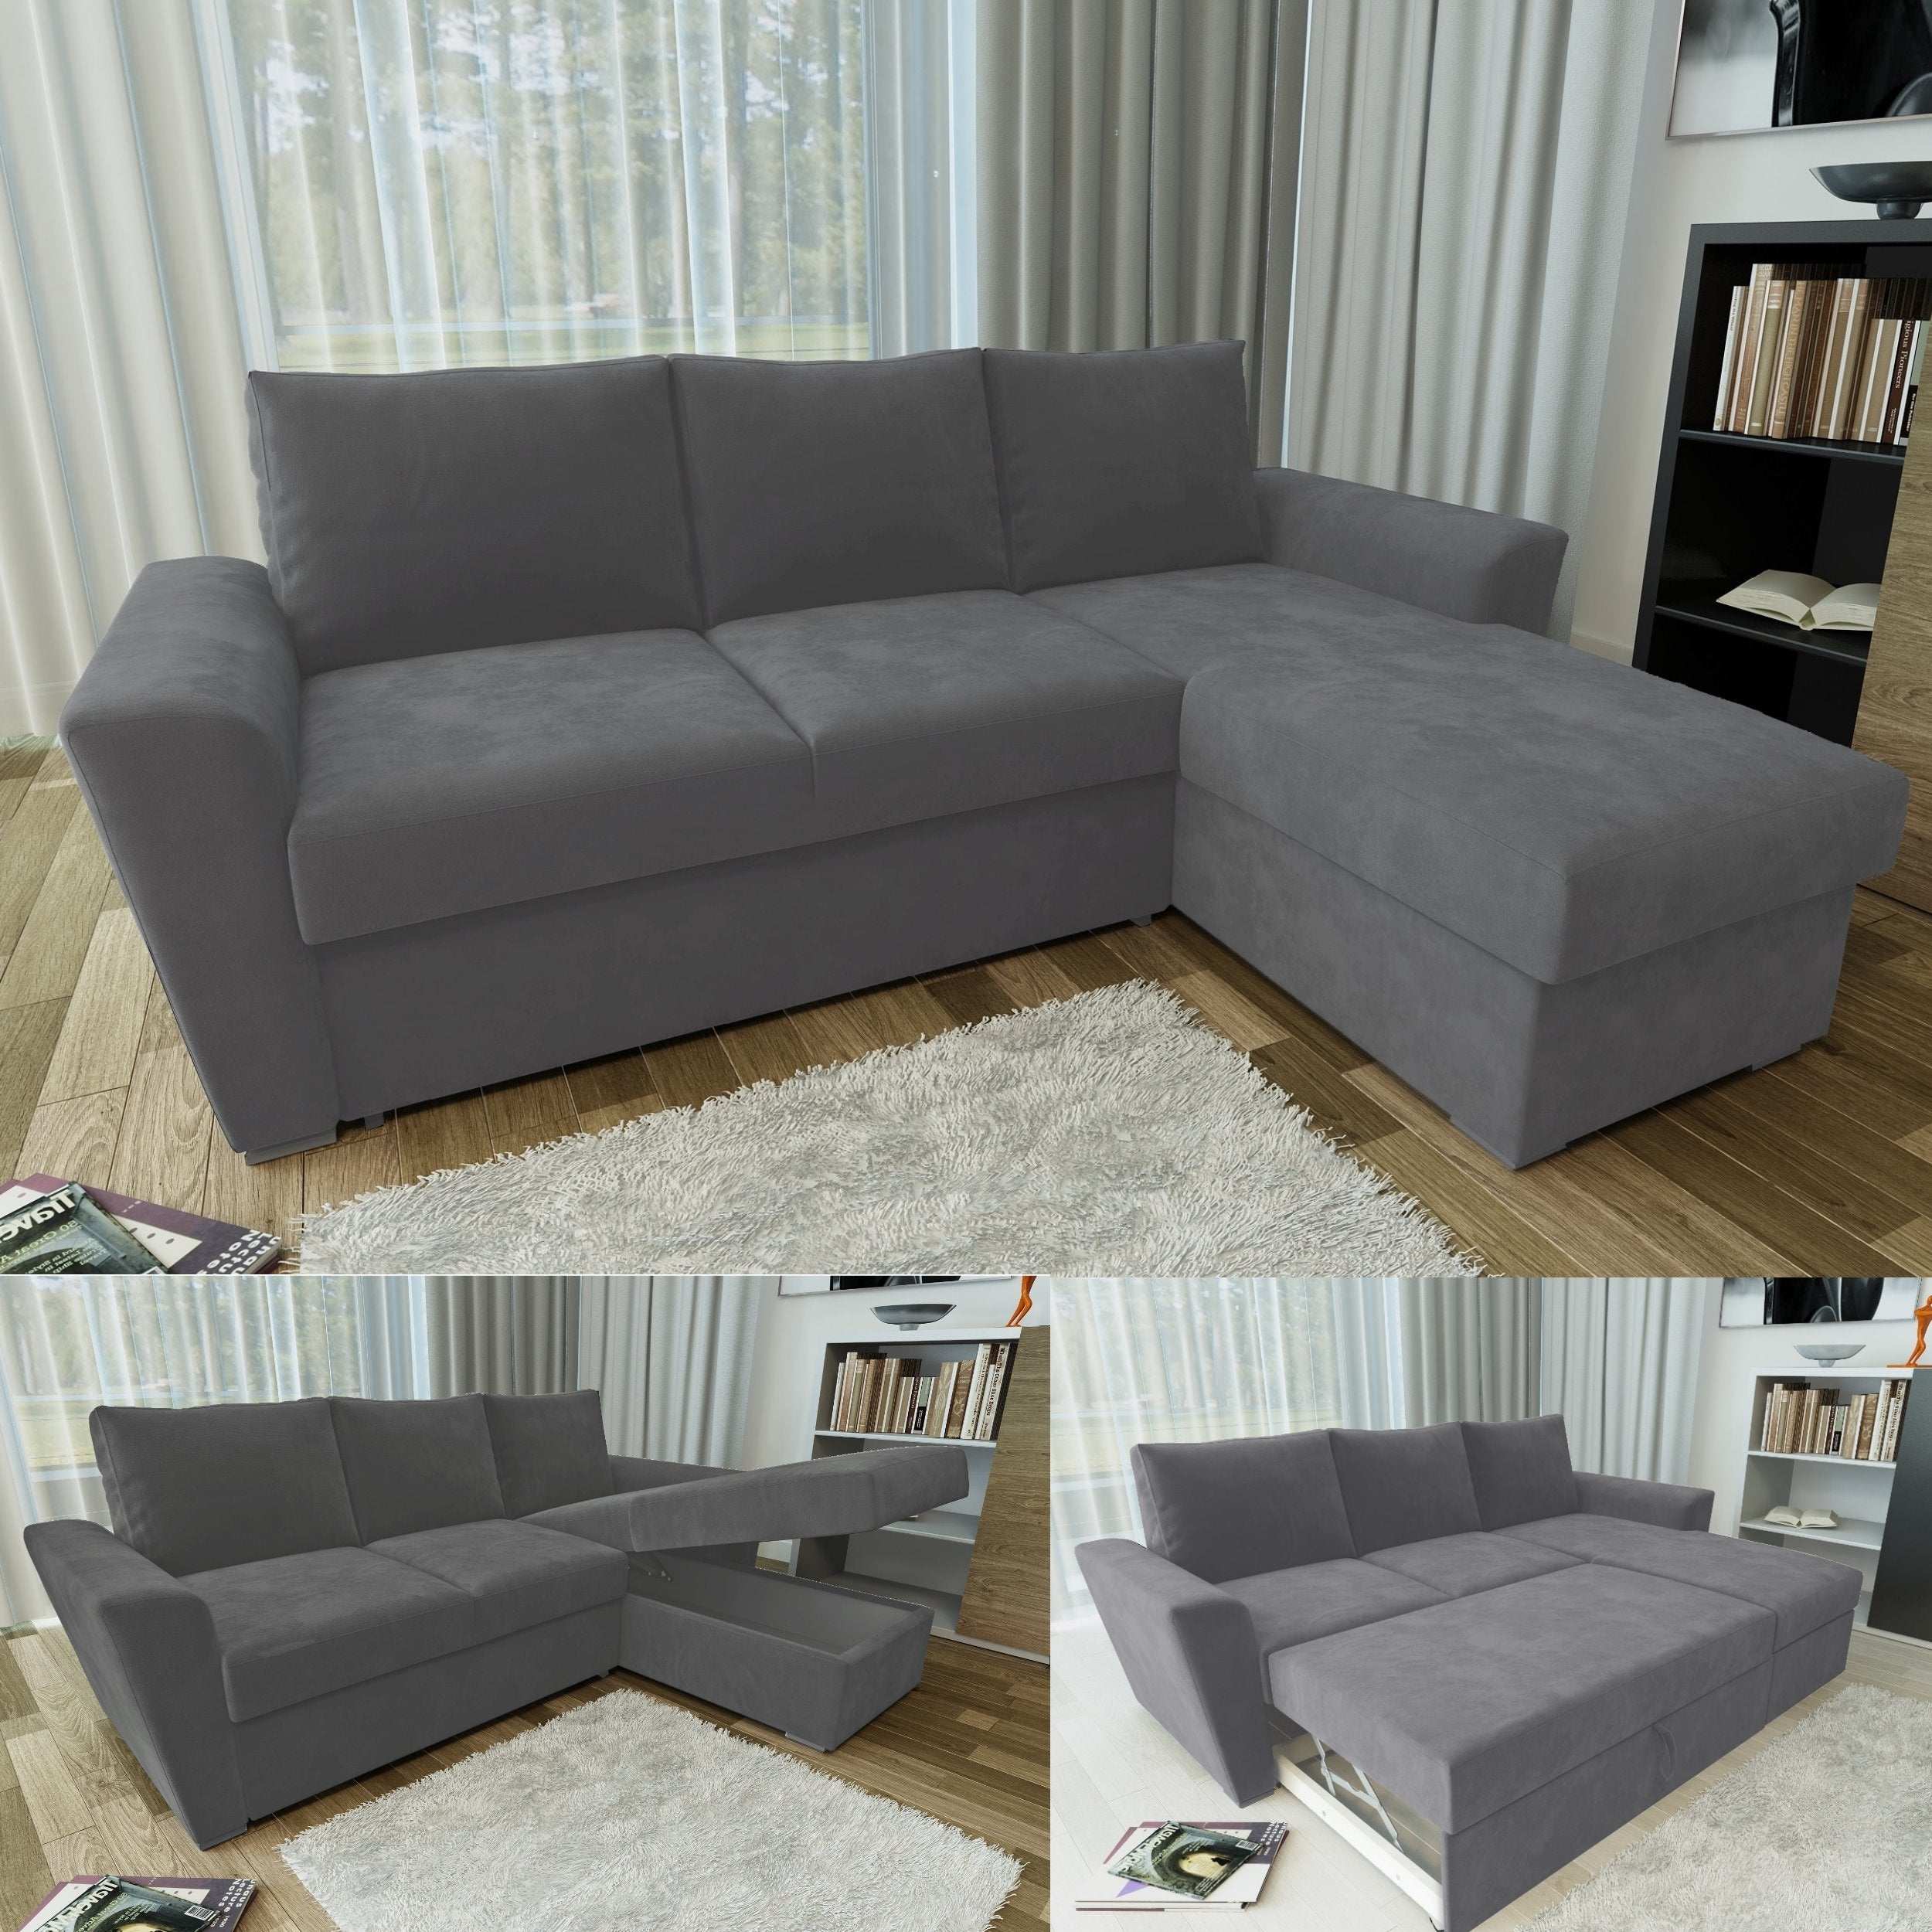 Picture of: Stanford L Shape Corner Sofabed With Storage In Charcoal Online4furniture Co Uk Online4furniture